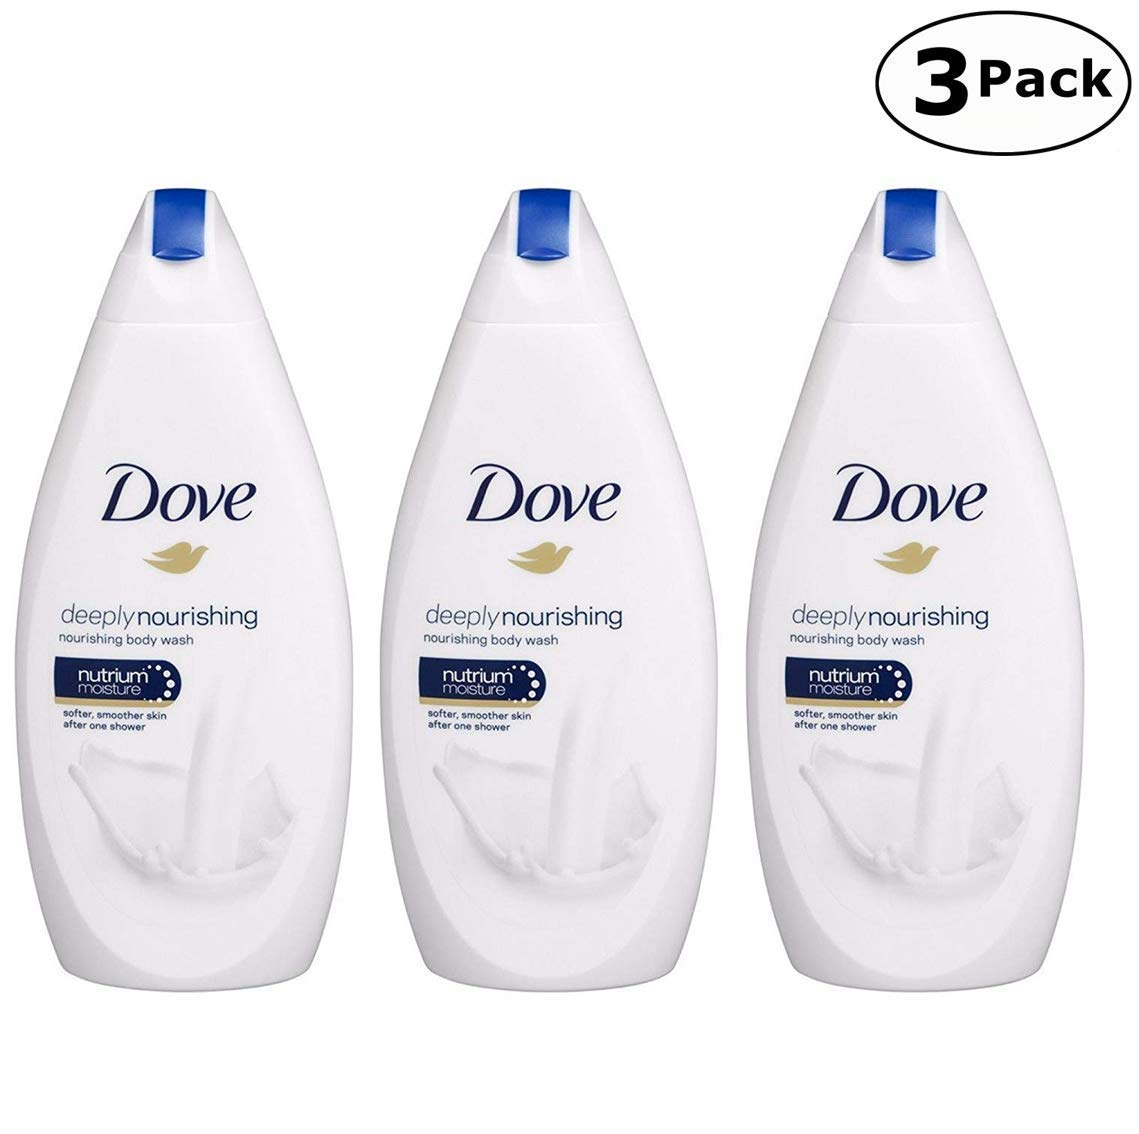 Dove Deeply Nourishing Body Wash, 16.9 Fluid Ounce / 500 ml (Pack of 3) International Version by Dove